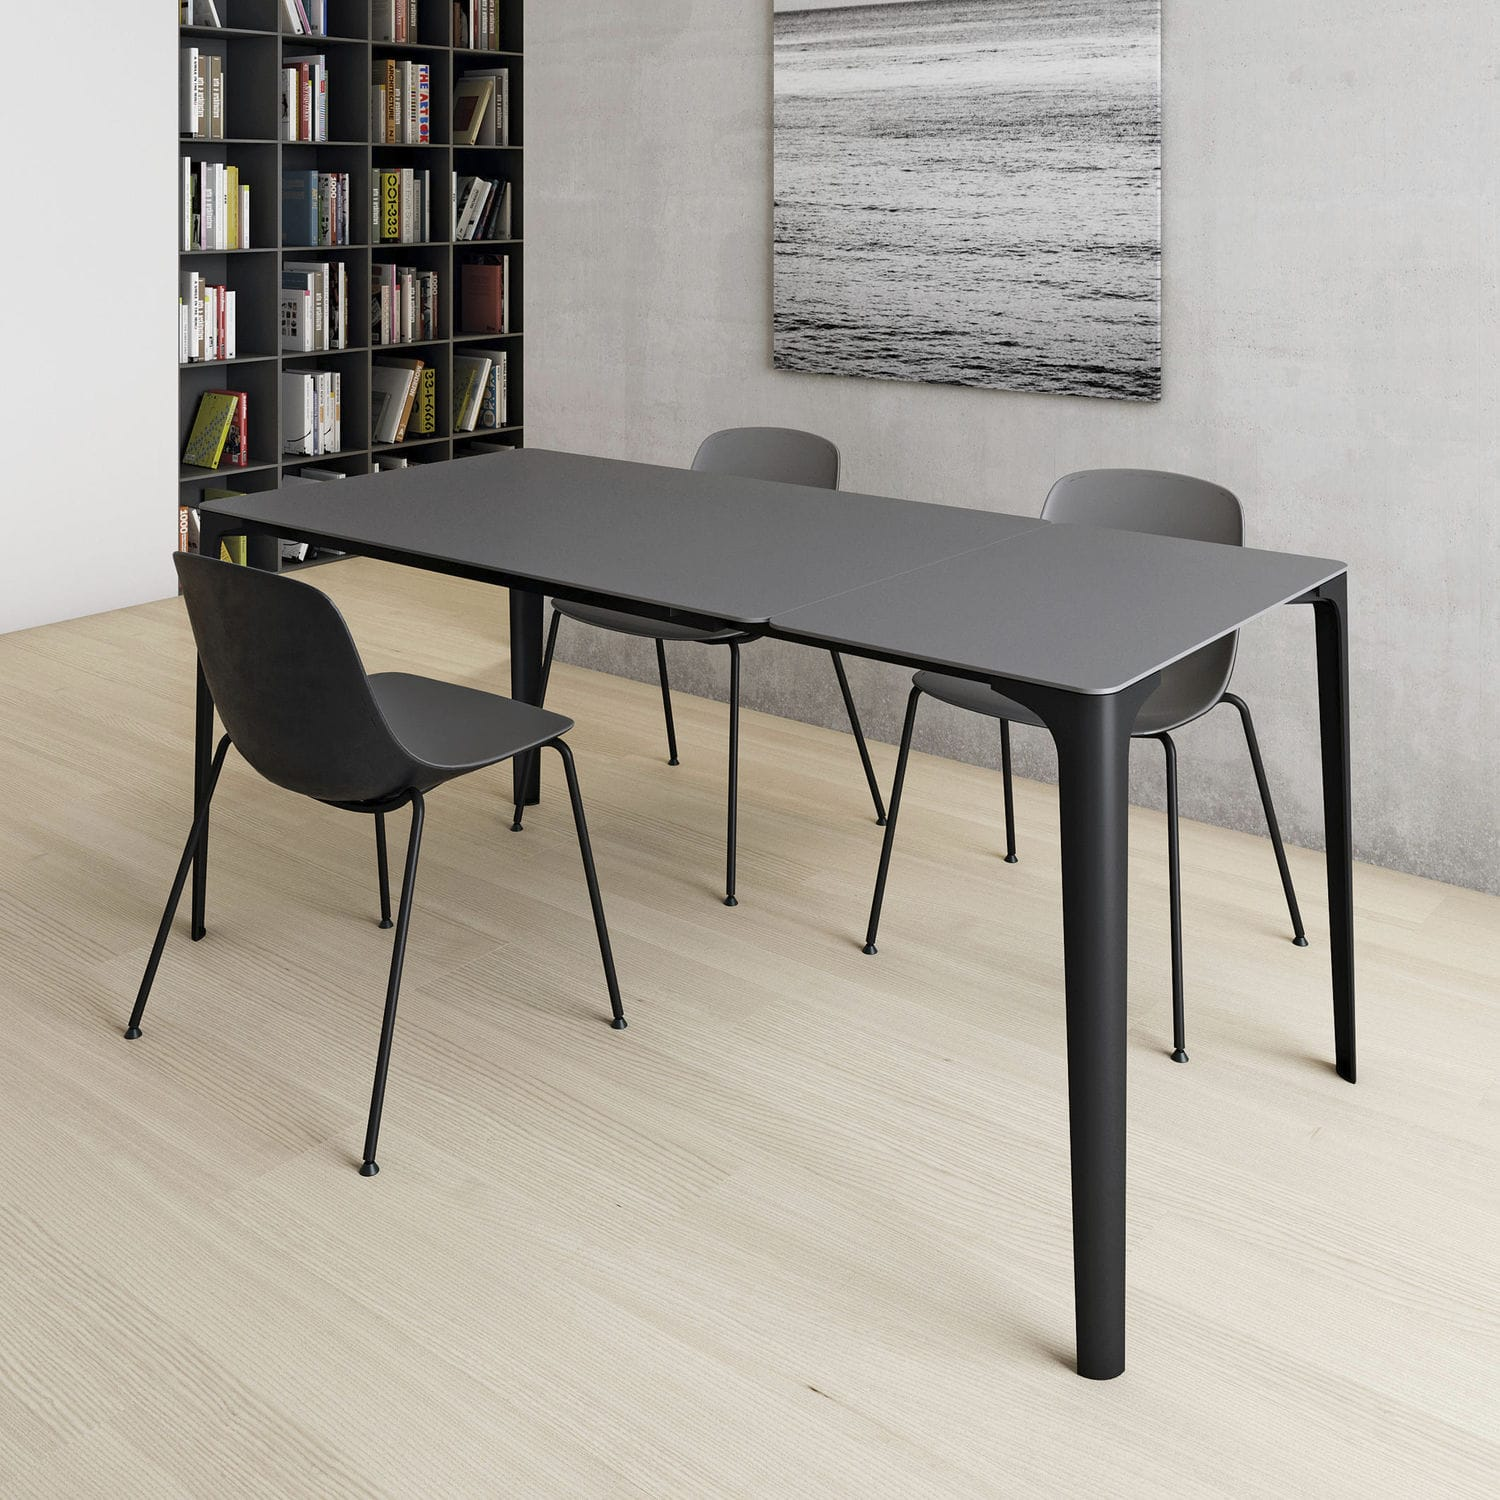 Contemporary Table / Glass / Oak / Painted Wood   MAT By Piervittorio  Prevedello